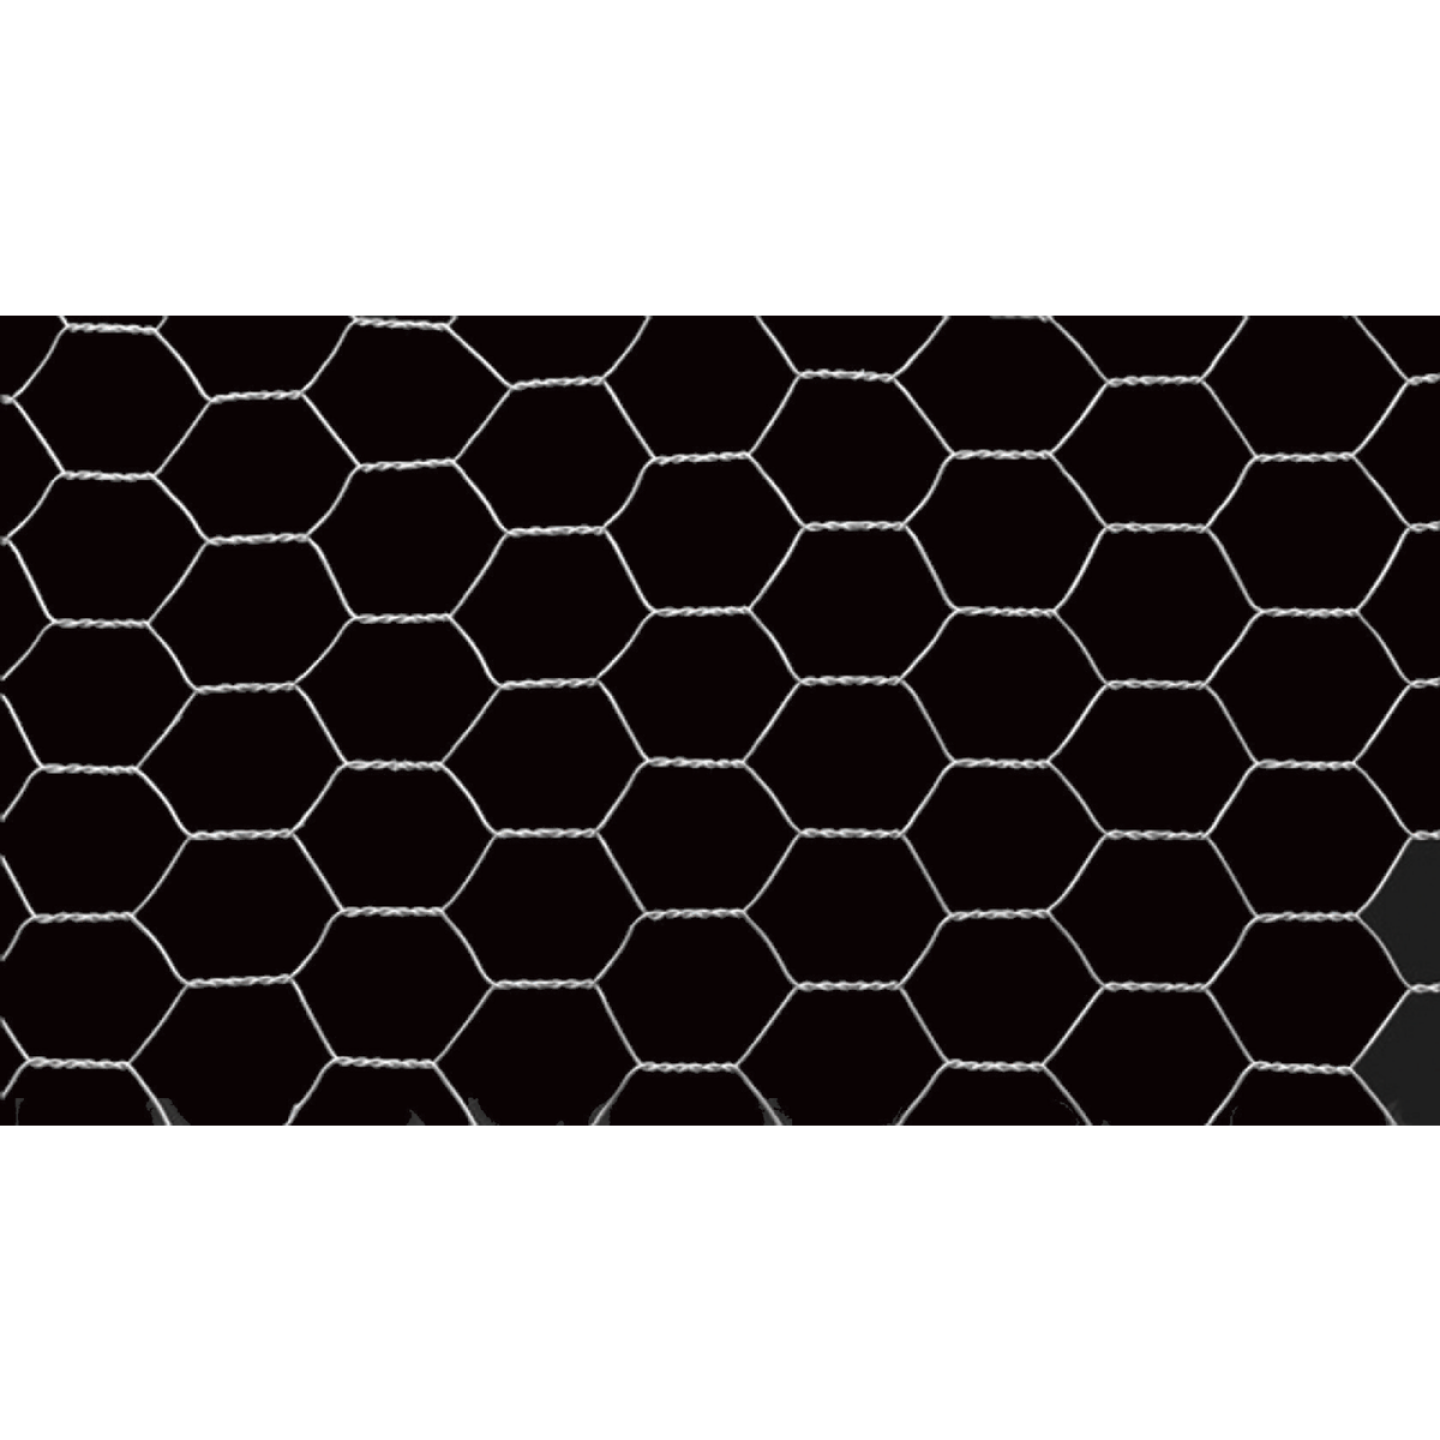 Do it 2 In. x 60 In. H. x 150 Ft. L. Hexagonal Wire Poultry Netting Image 2